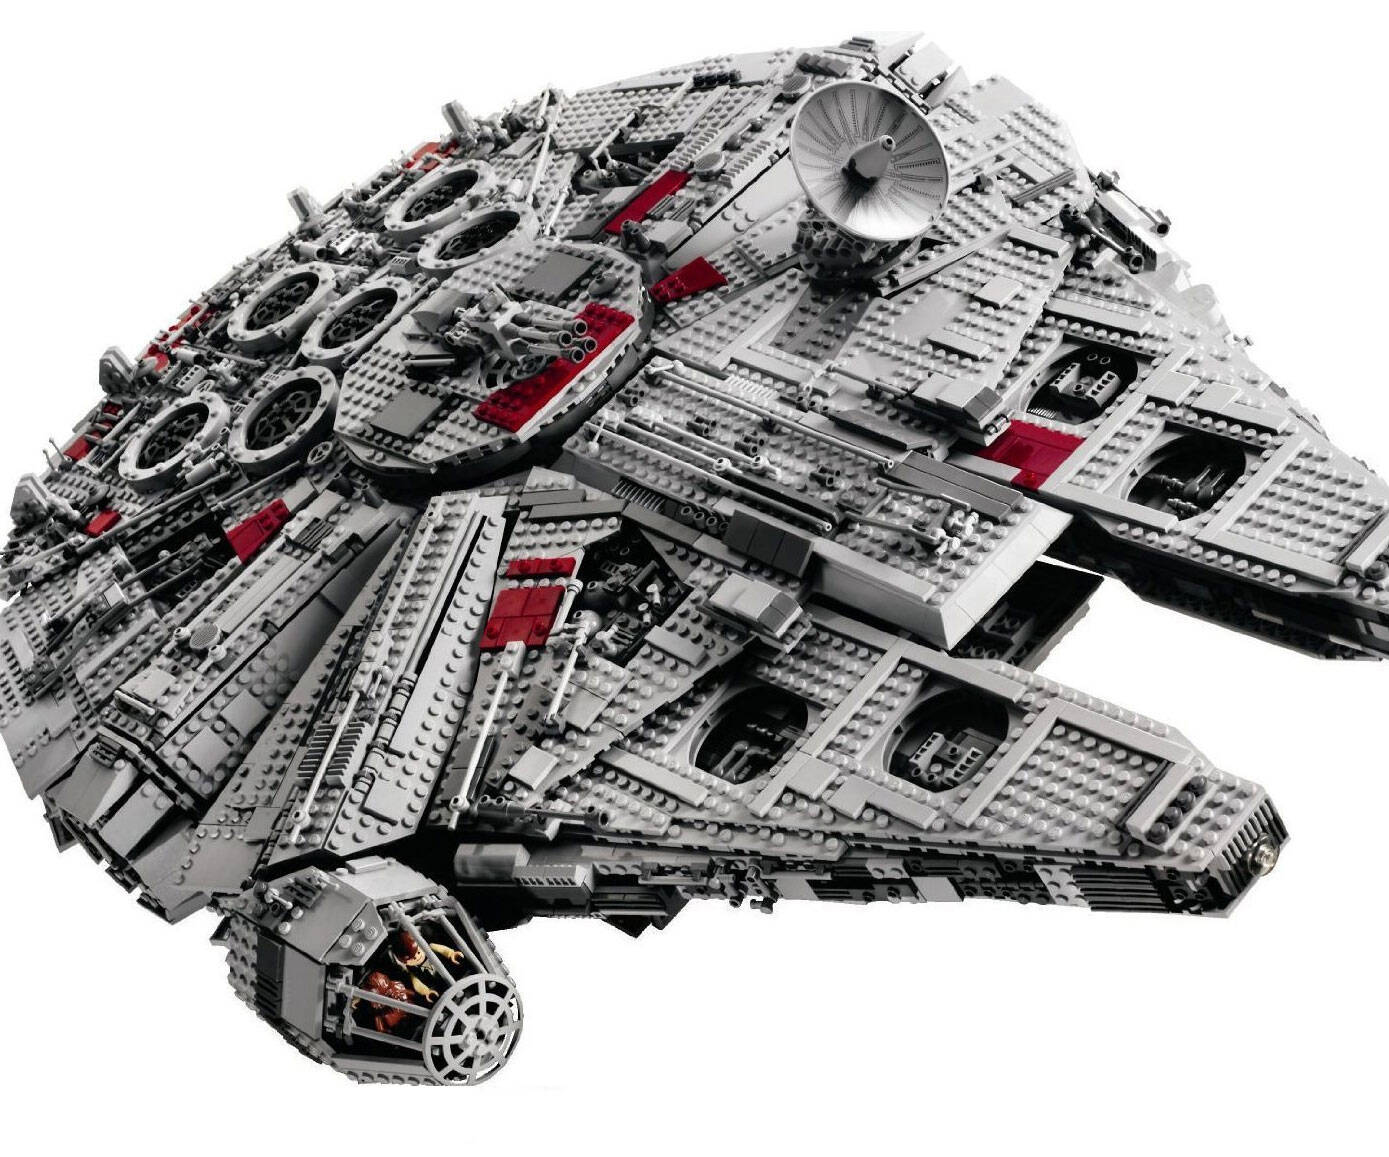 LEGO Millennium Falcon - coolthings.us